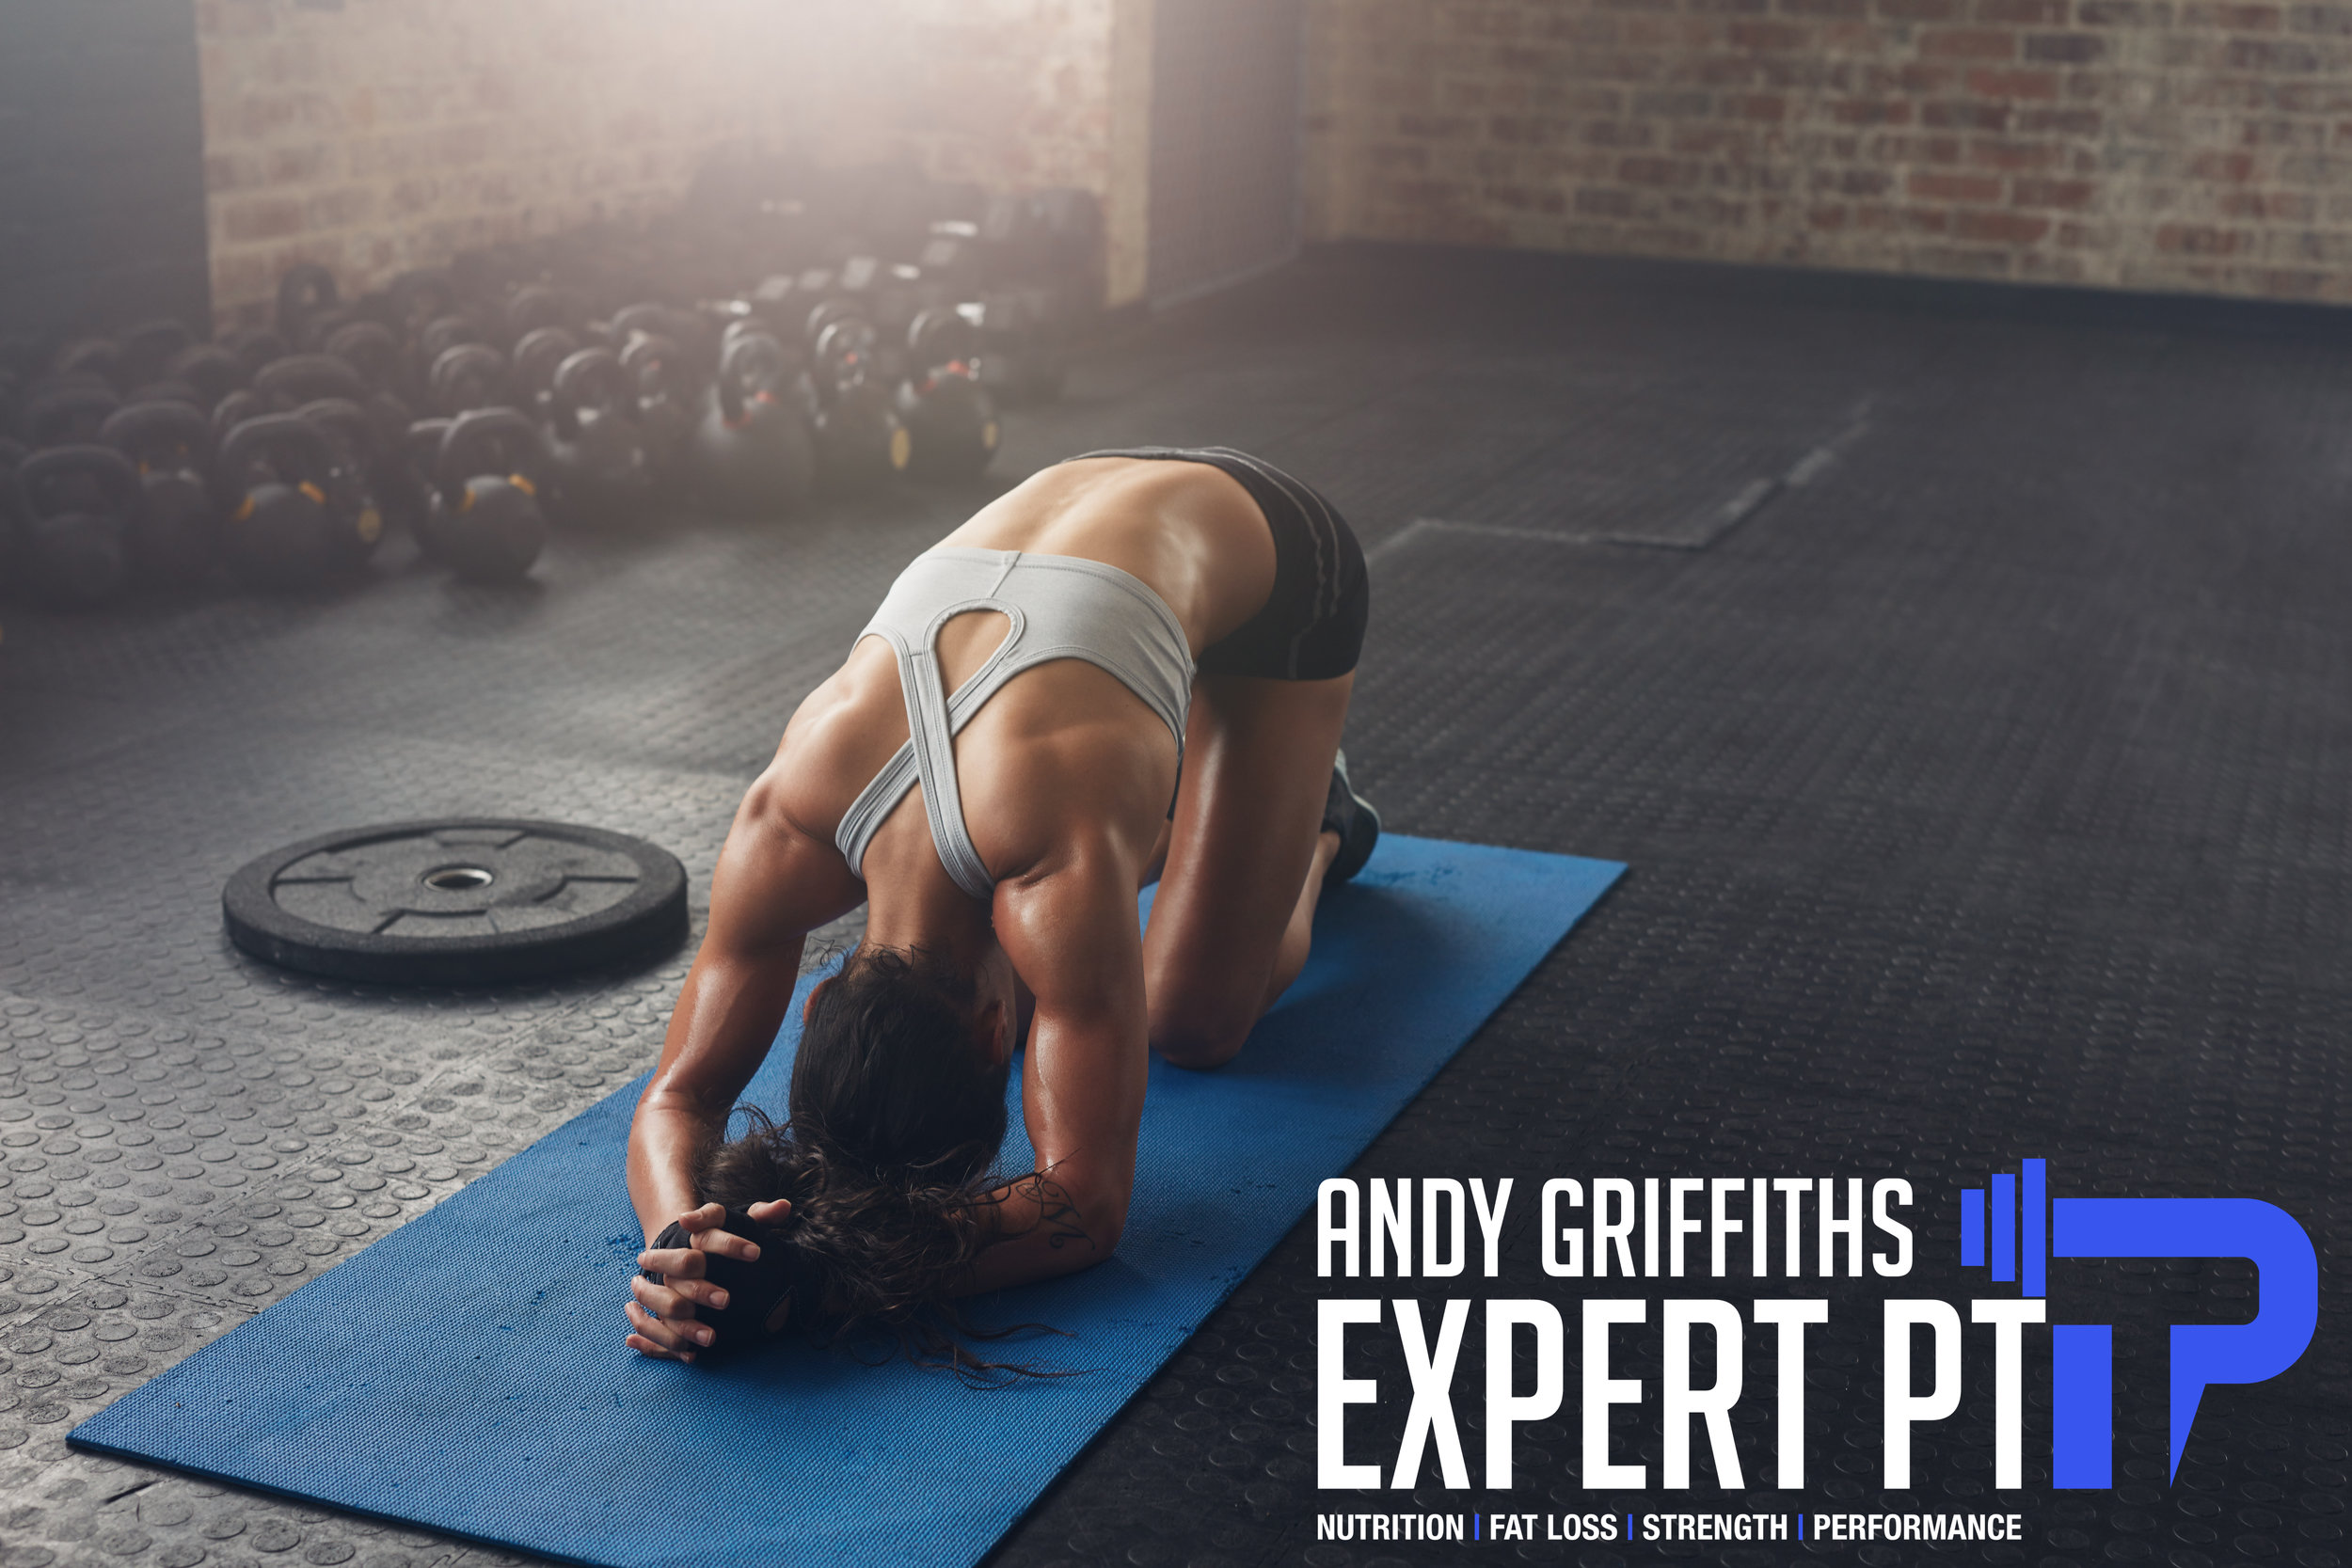 Achieve Real Results With Expert PT's Personal Training in Chester